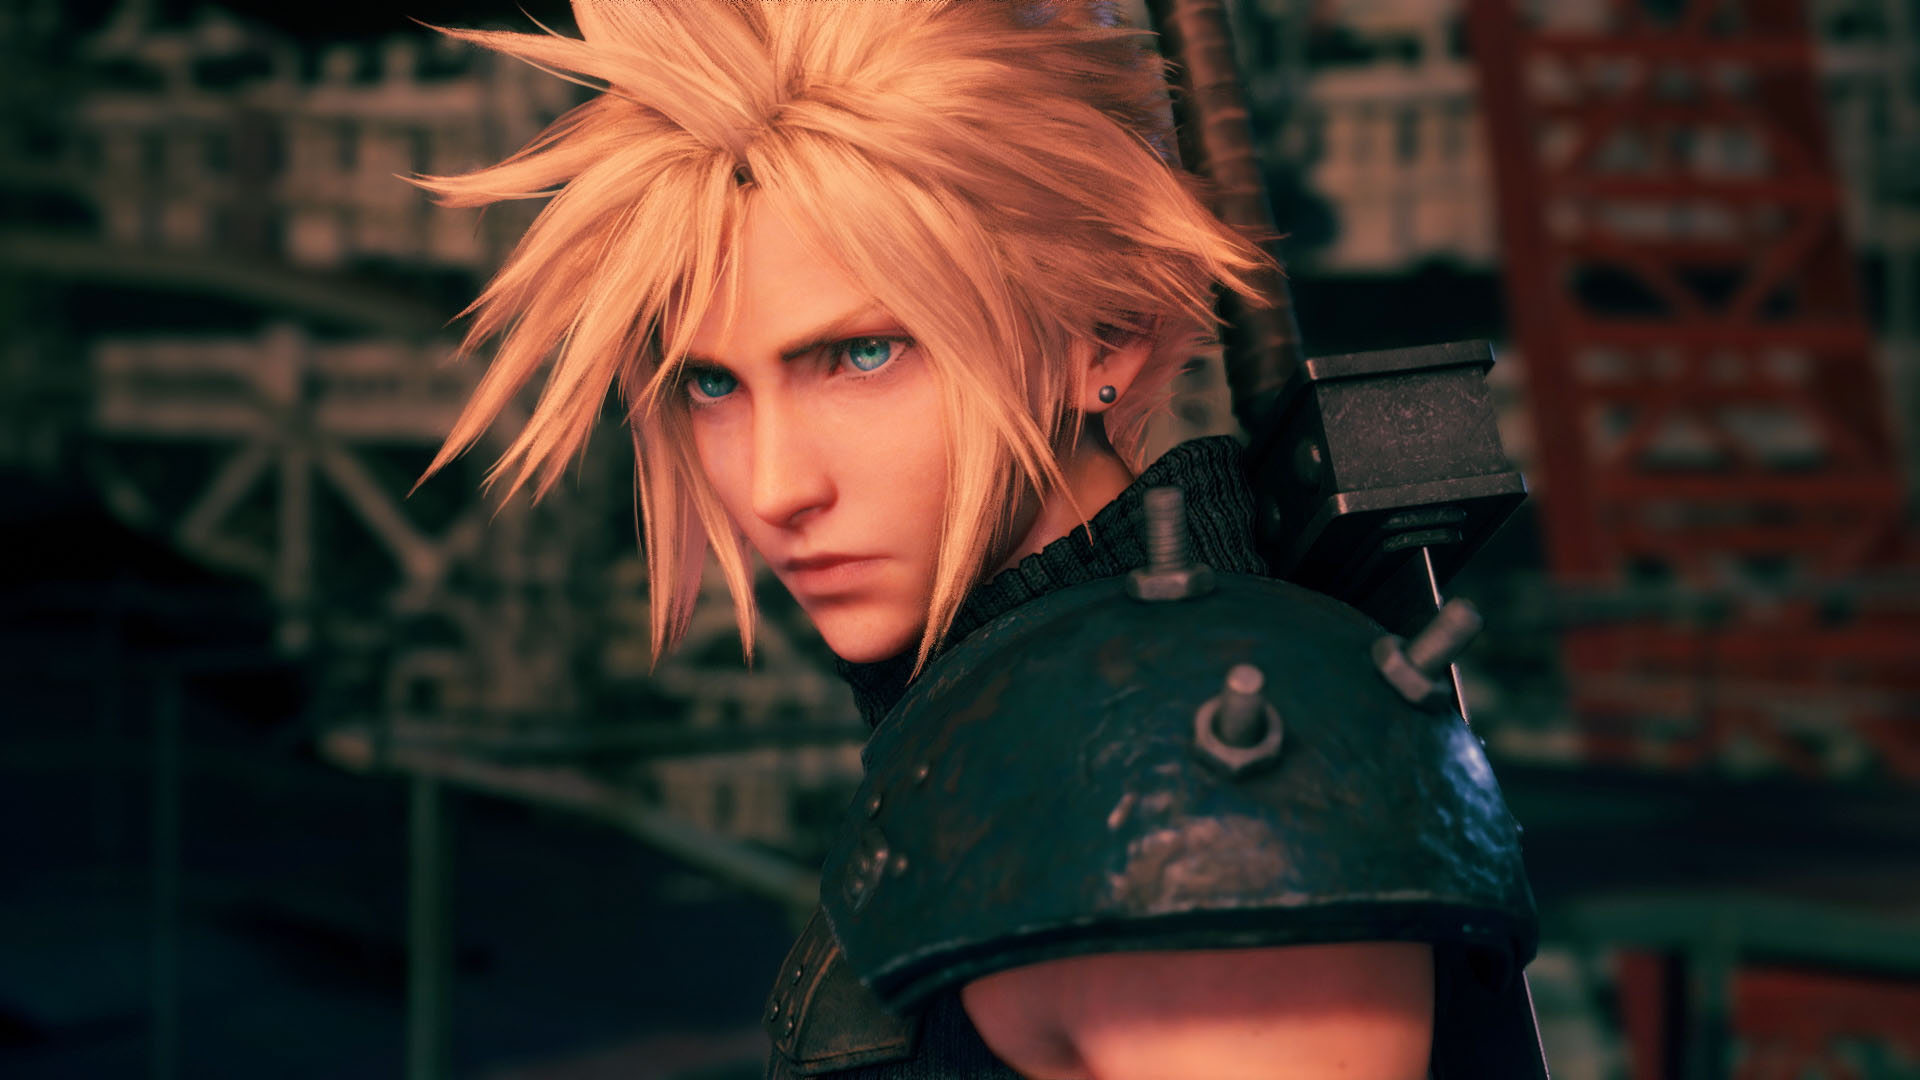 Ff7 Remake Changes How Updated Visuals Give Cloud More